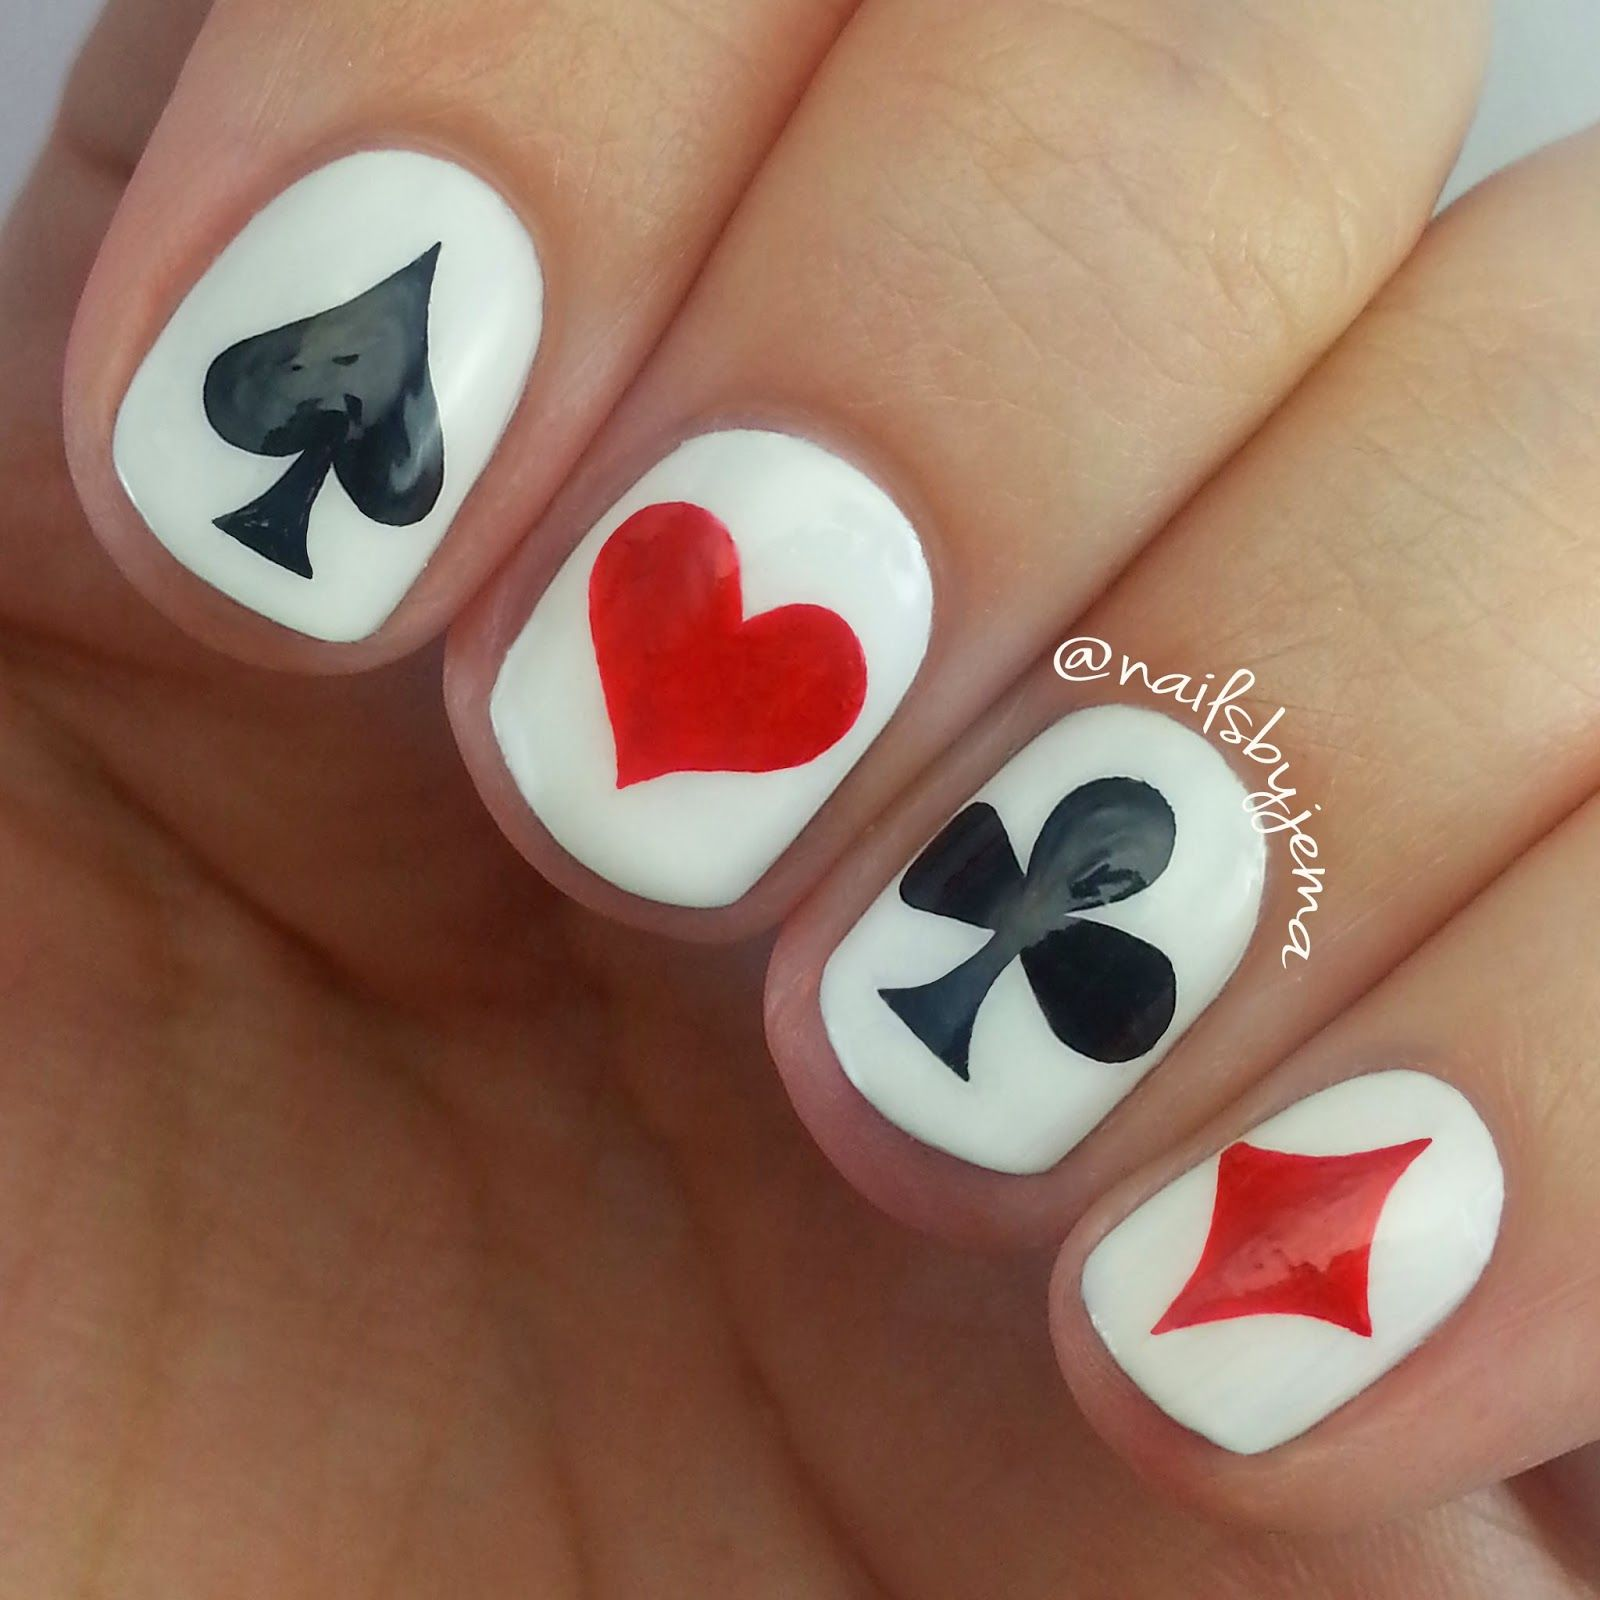 ♡ J E M A ♡(@nailsbyjema) - Instagram photos and videos | Las ...